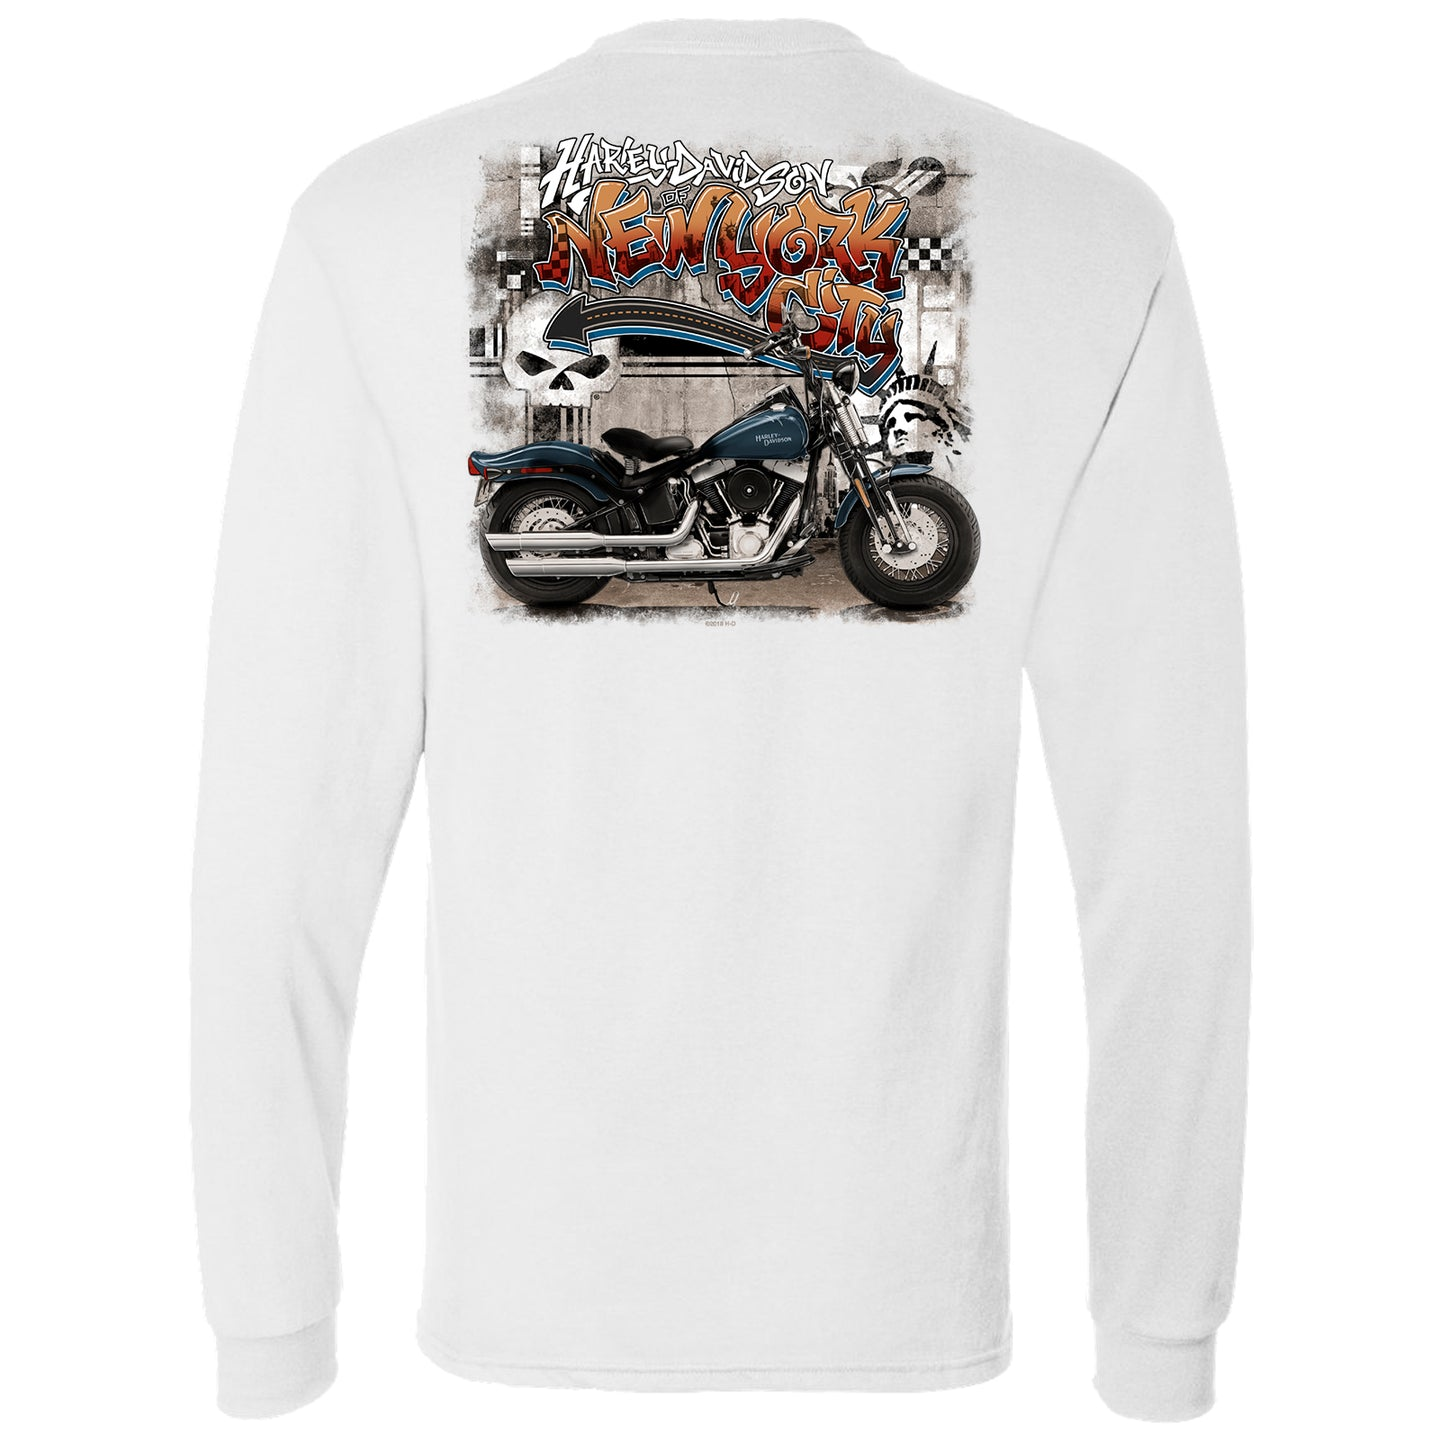 back-harley-davidson-nyc-graffiti-long-sleeve-white